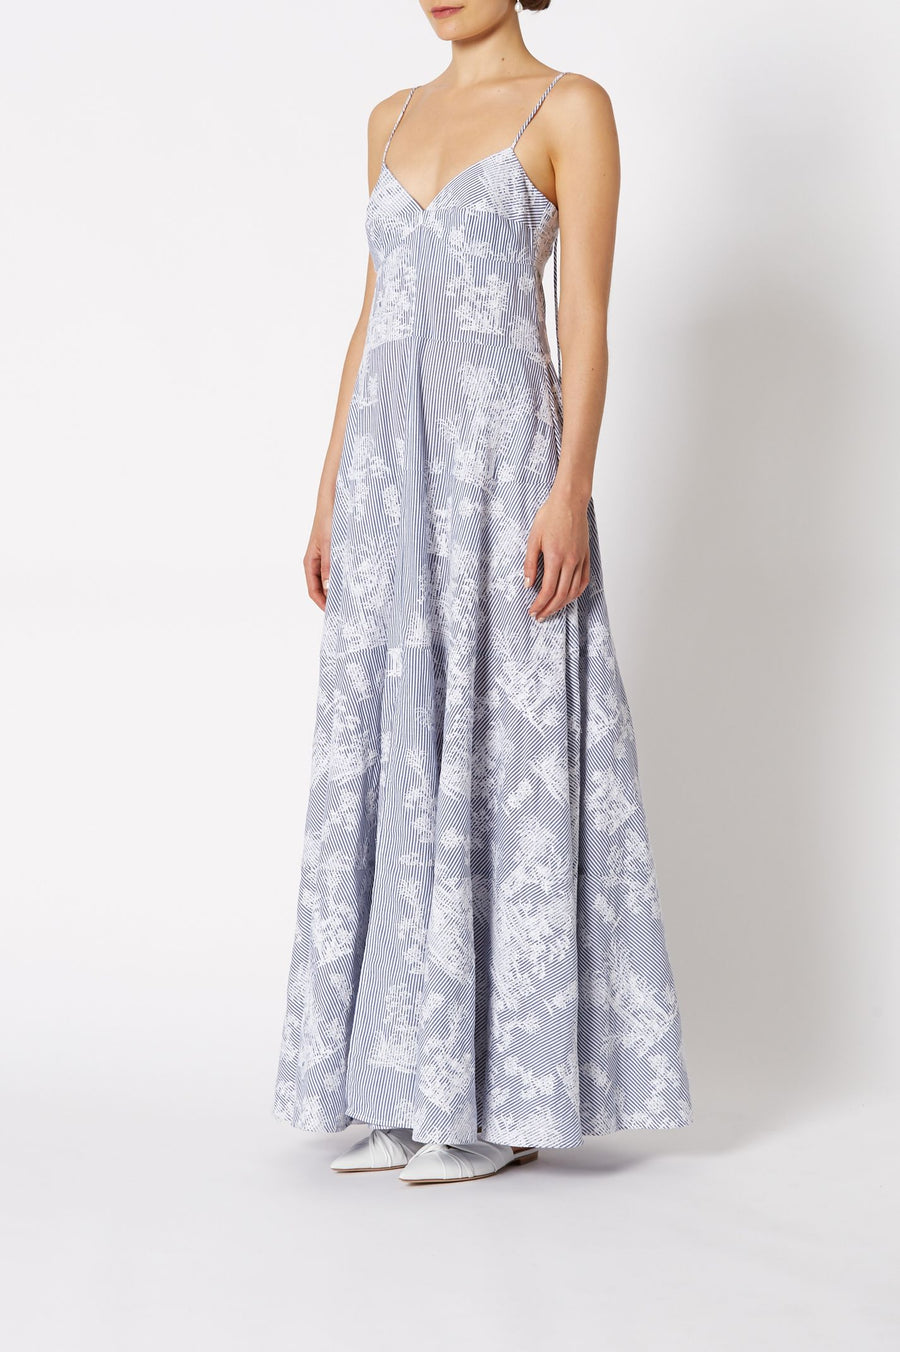 CHINOISERIE EMBROIDERED DRESS WHITE-BLUE, Loose fit, Maxi length